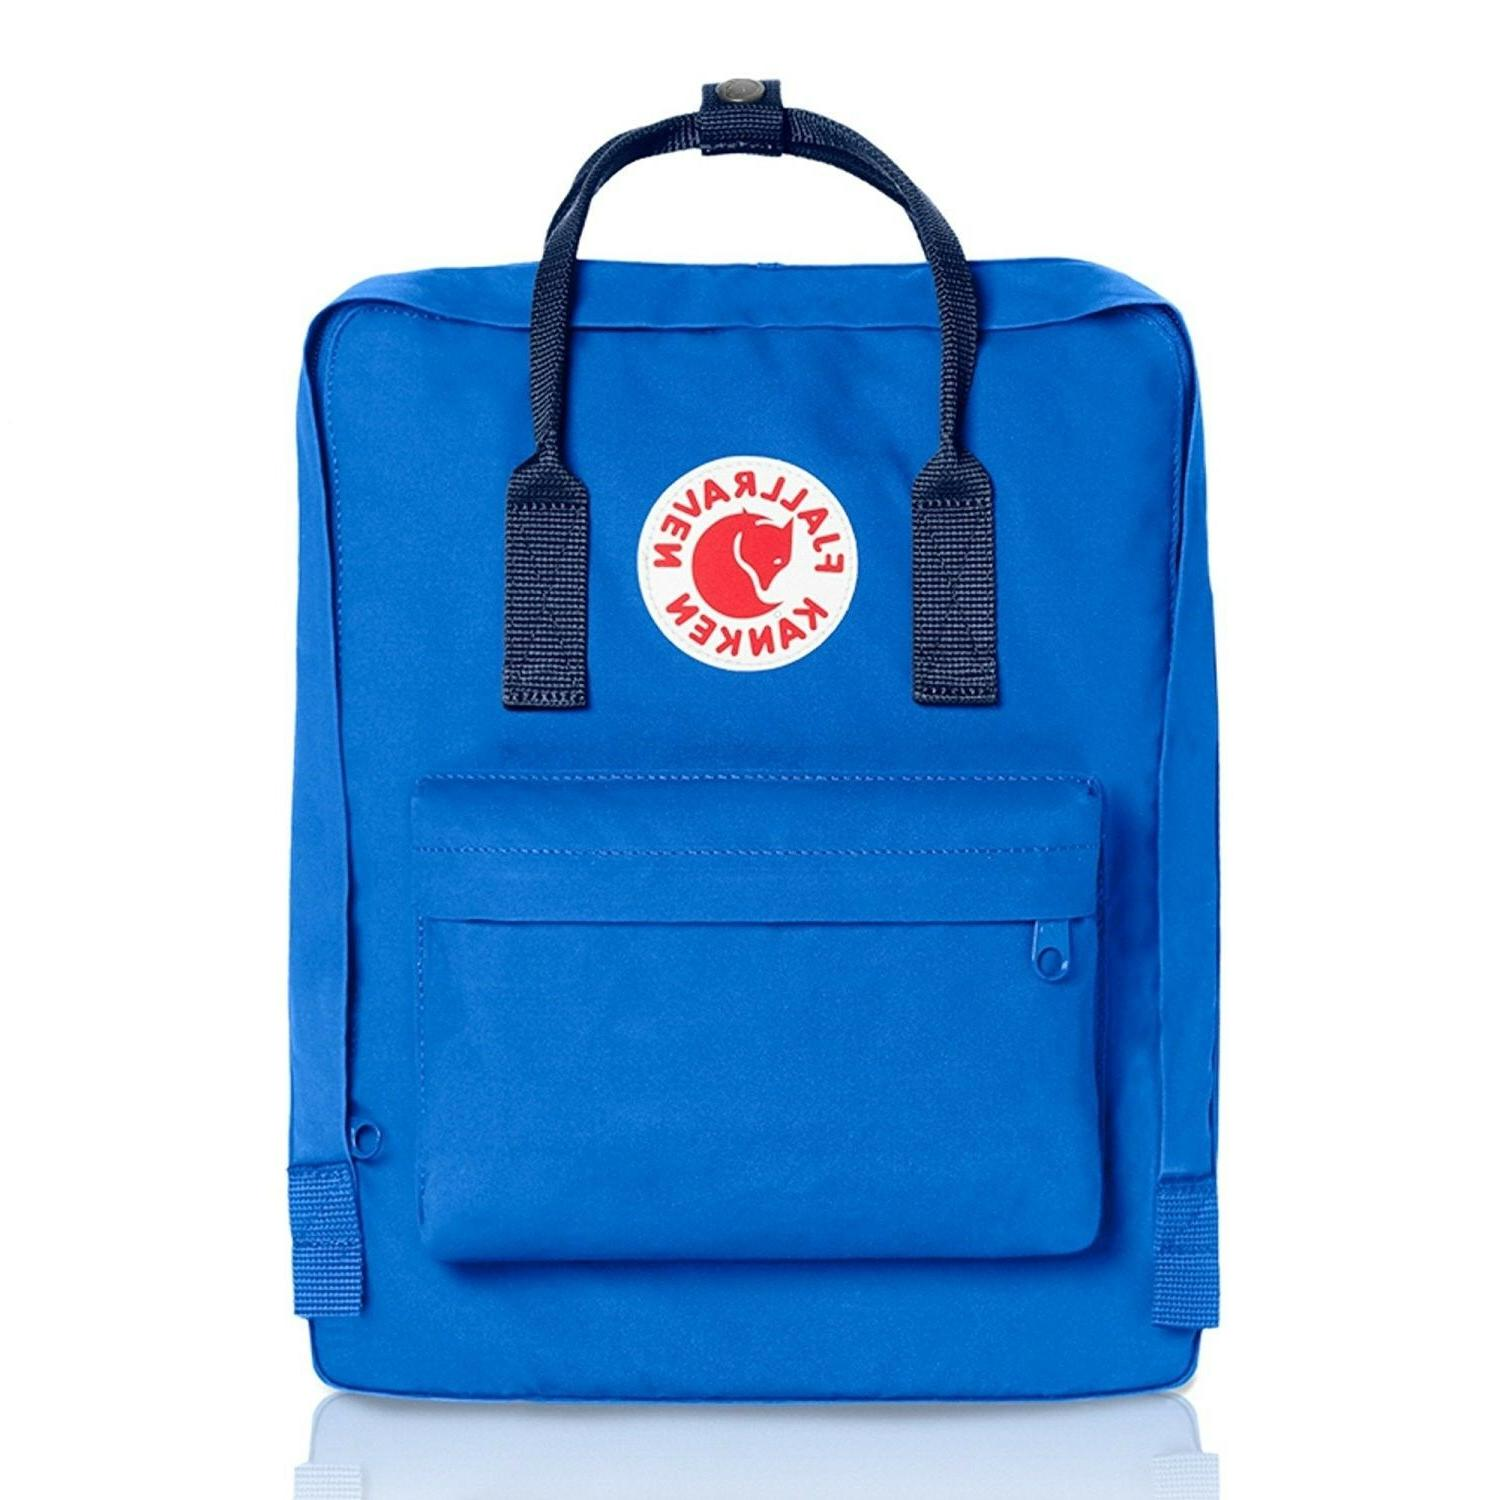 Fjallraven-Kanken Classic and Responsibility since